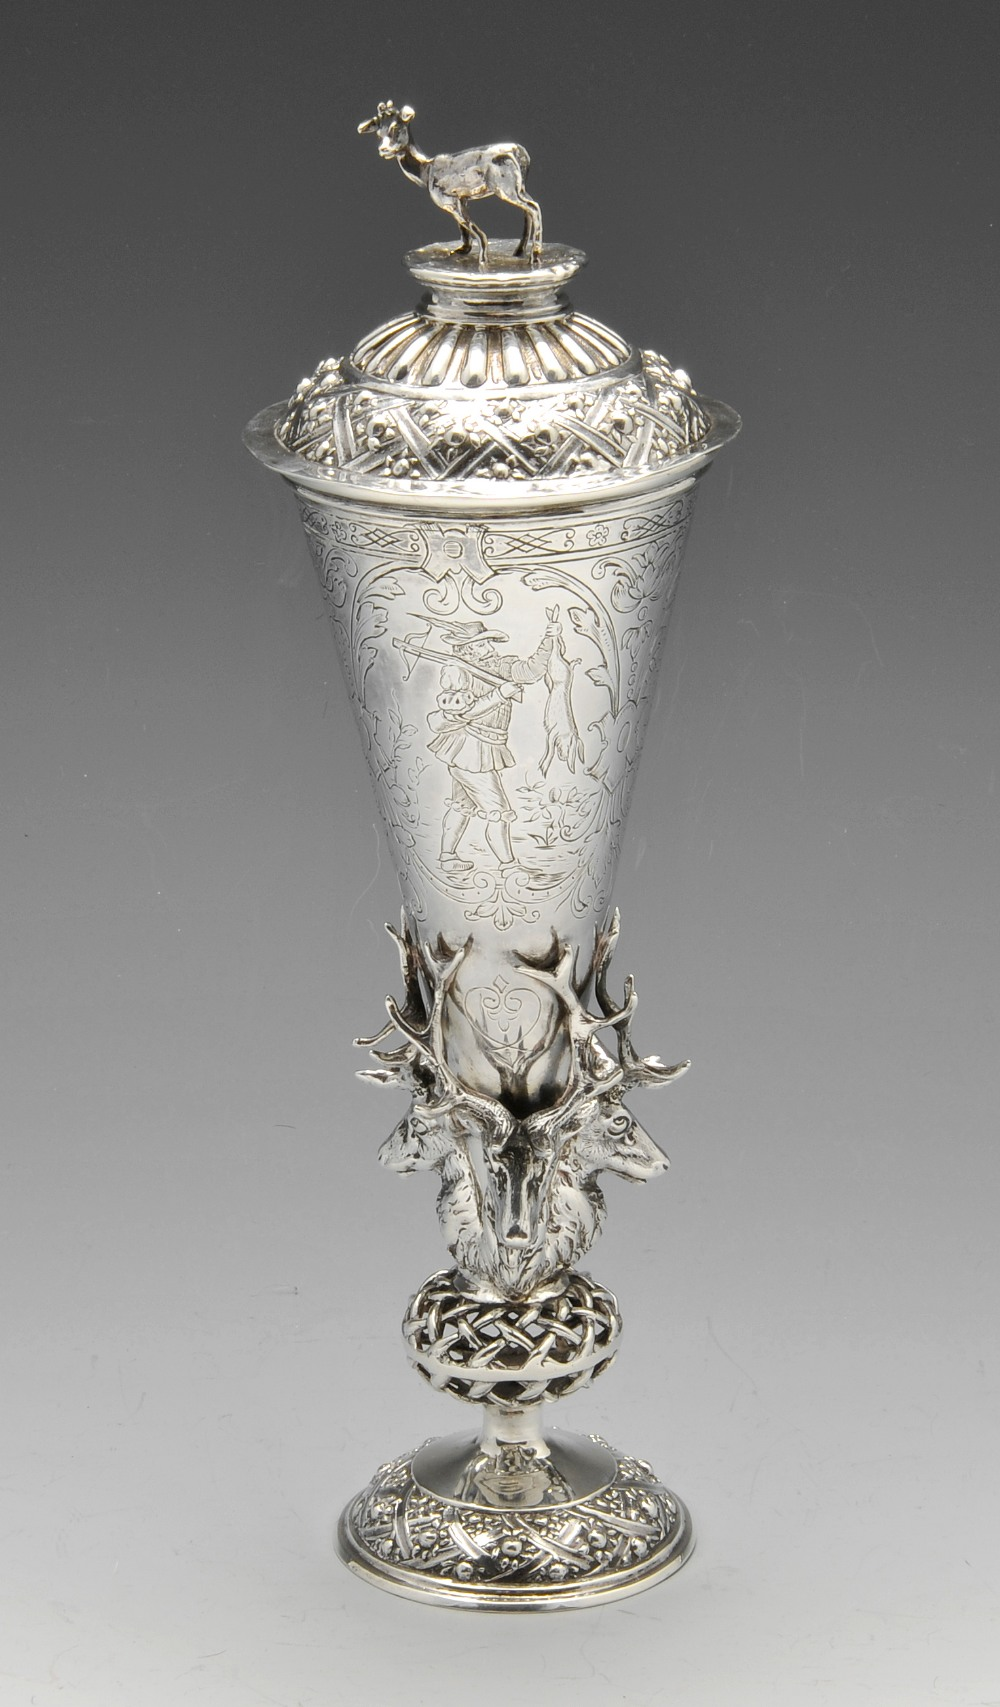 Lot 424 - A late nineteenth century imported silver hunting cup and cover, the conical body engraved with